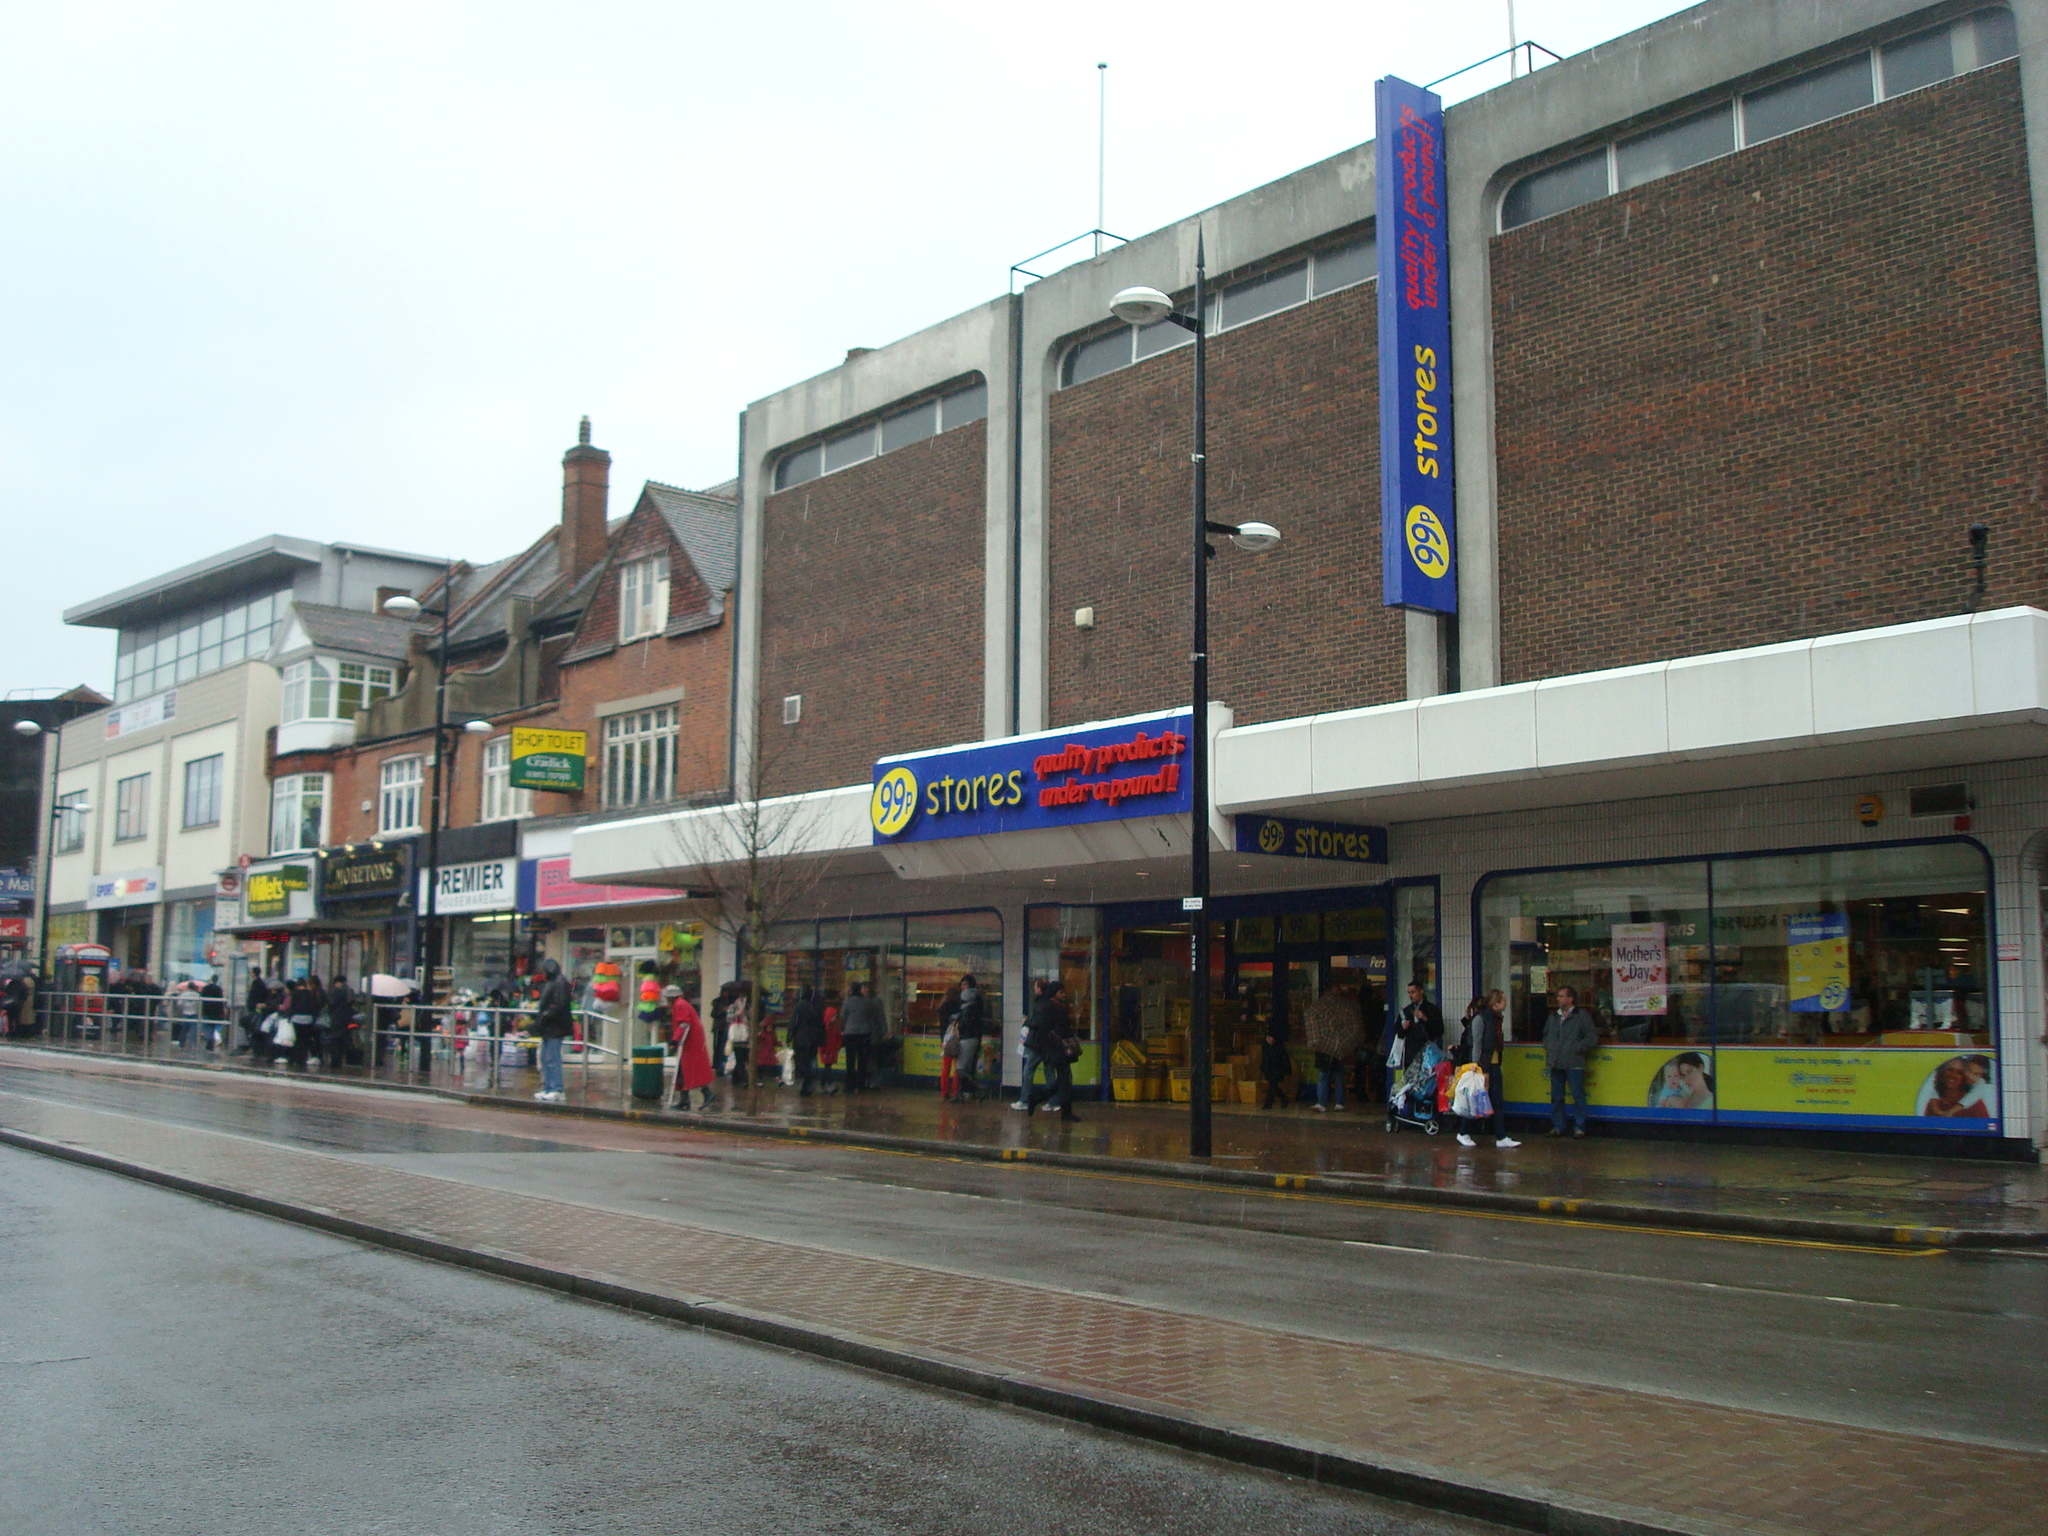 99p_Store,_Bromley_-_geograph.org.uk_-_1716117